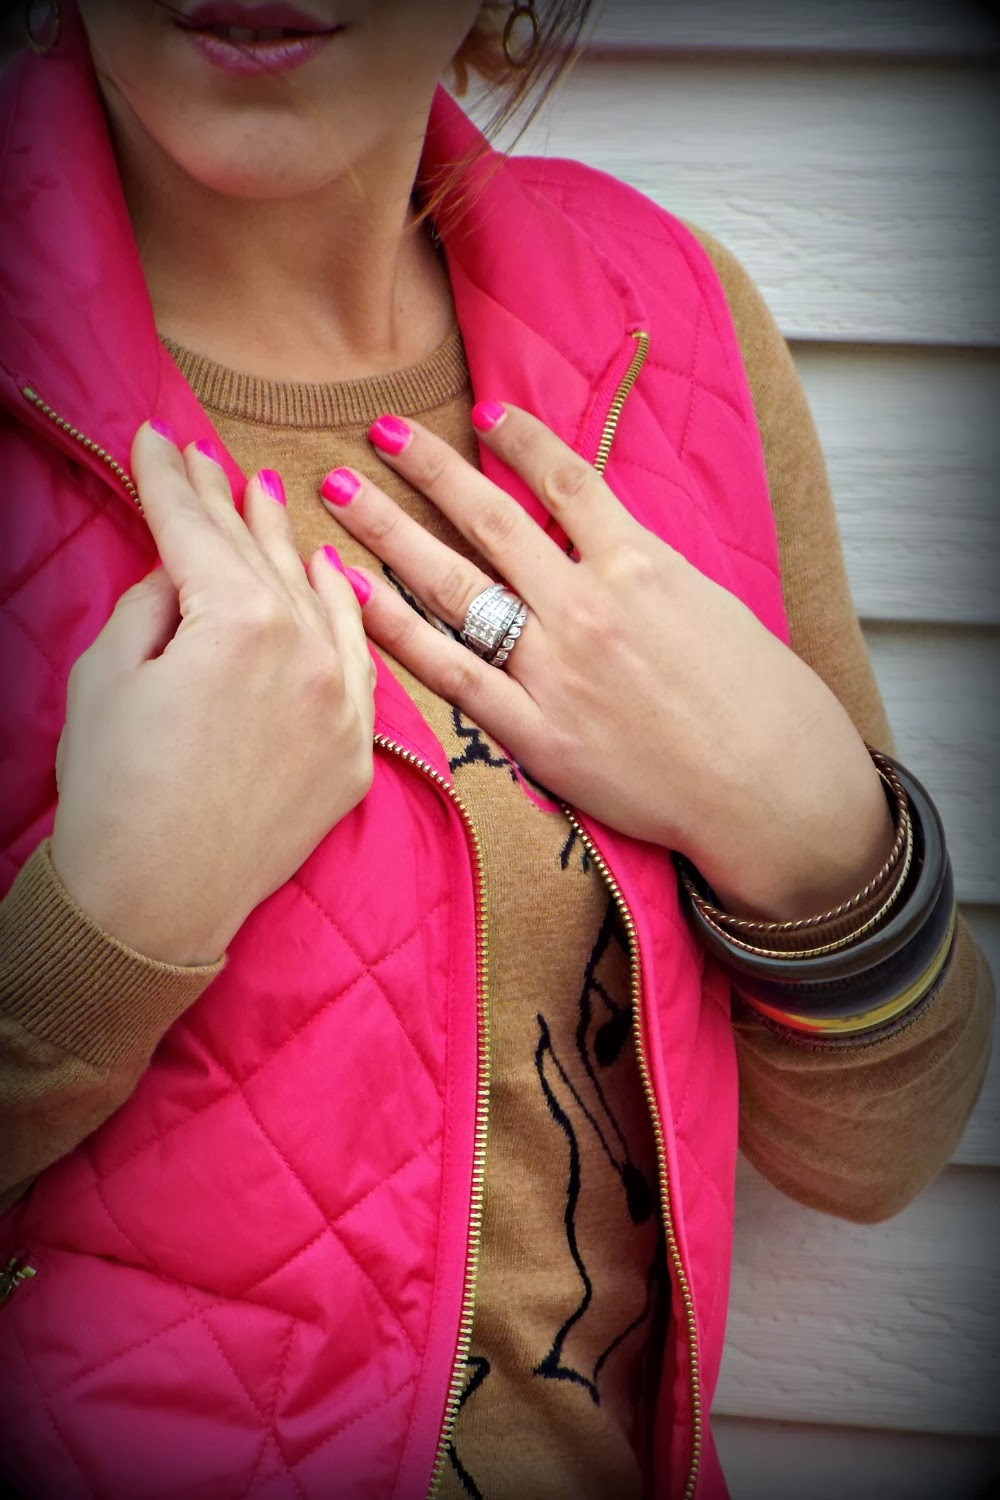 Foxy Lady Fashion Bling And Other Girly Things